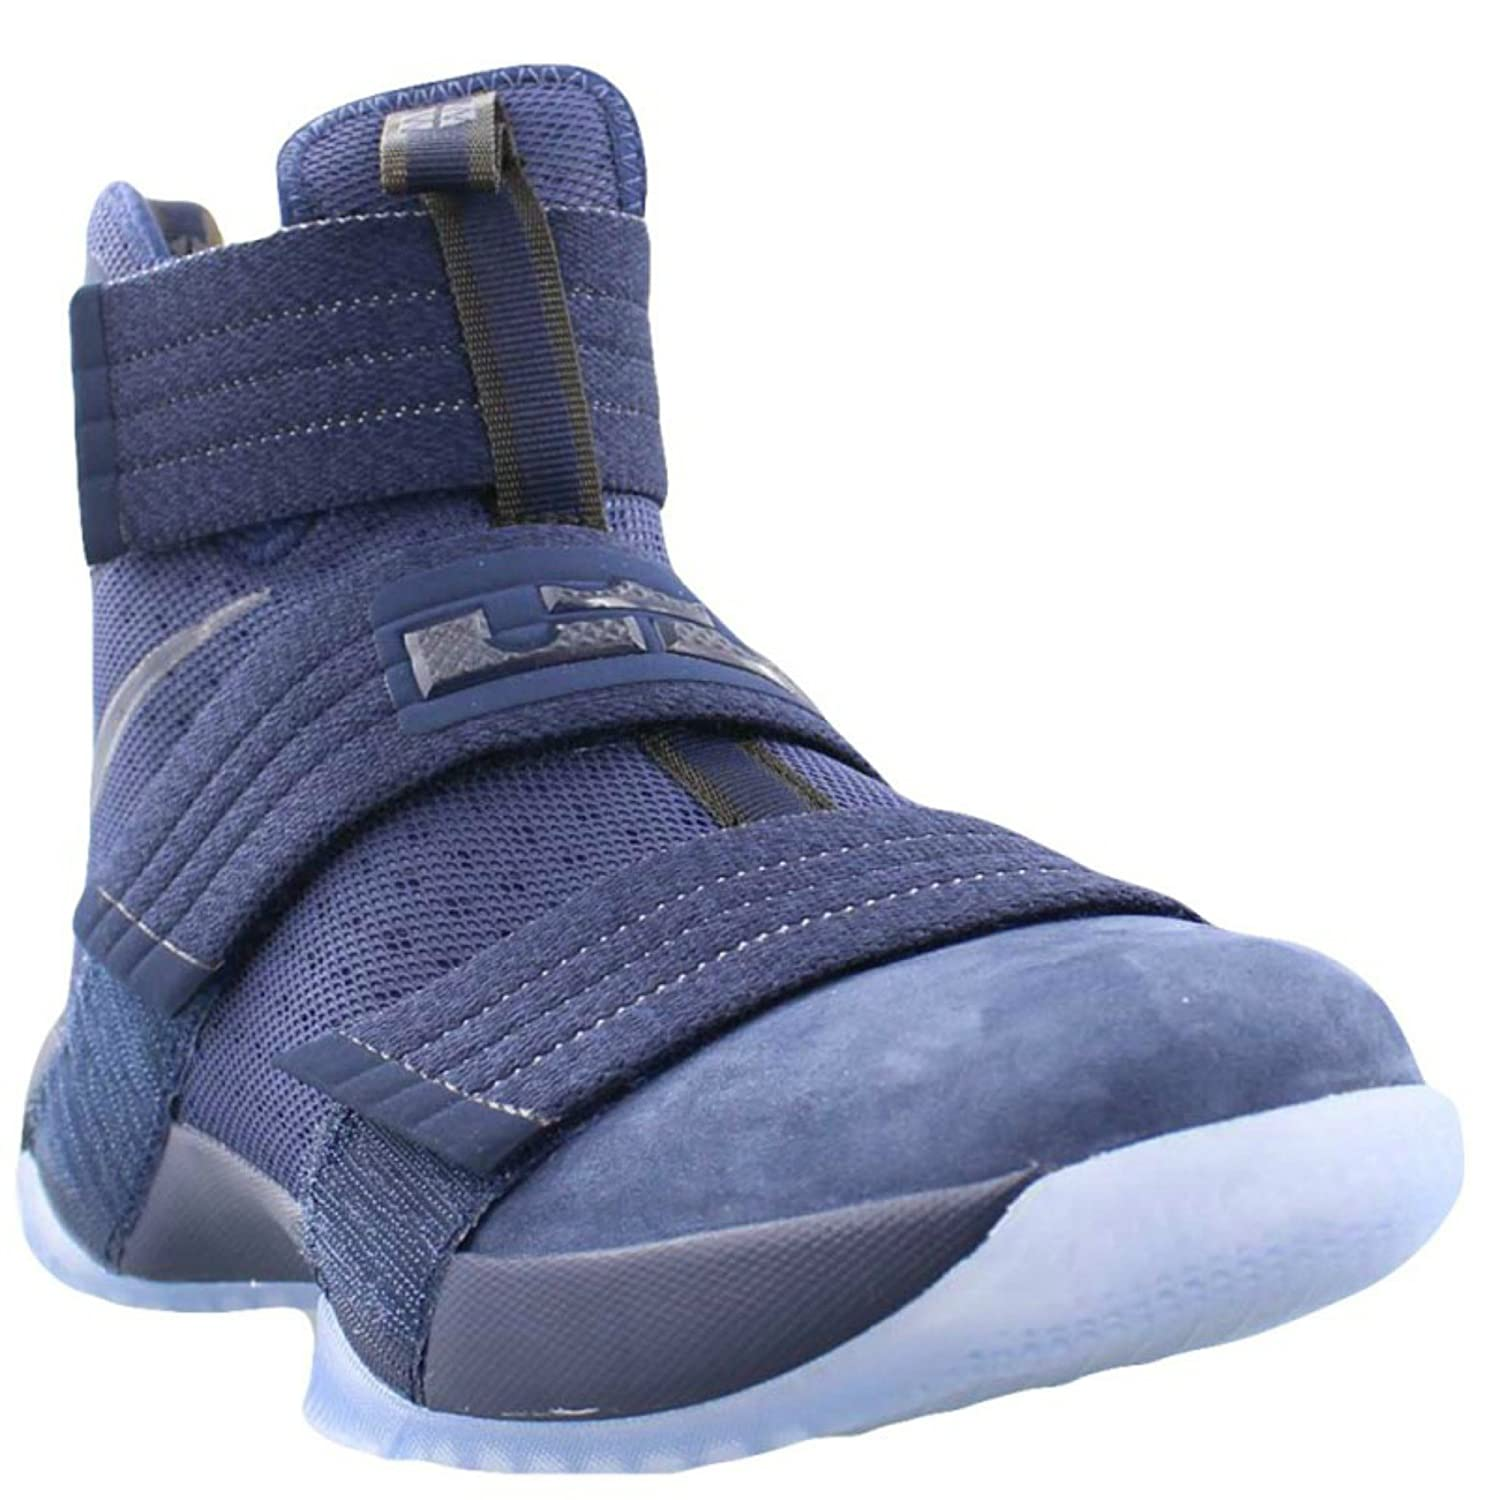 best service 21092 15190 07462 819fa shop amazon nike zoom lebron soldier 10 sfg 844378 444 midnight  navy game royal midnight navy ...